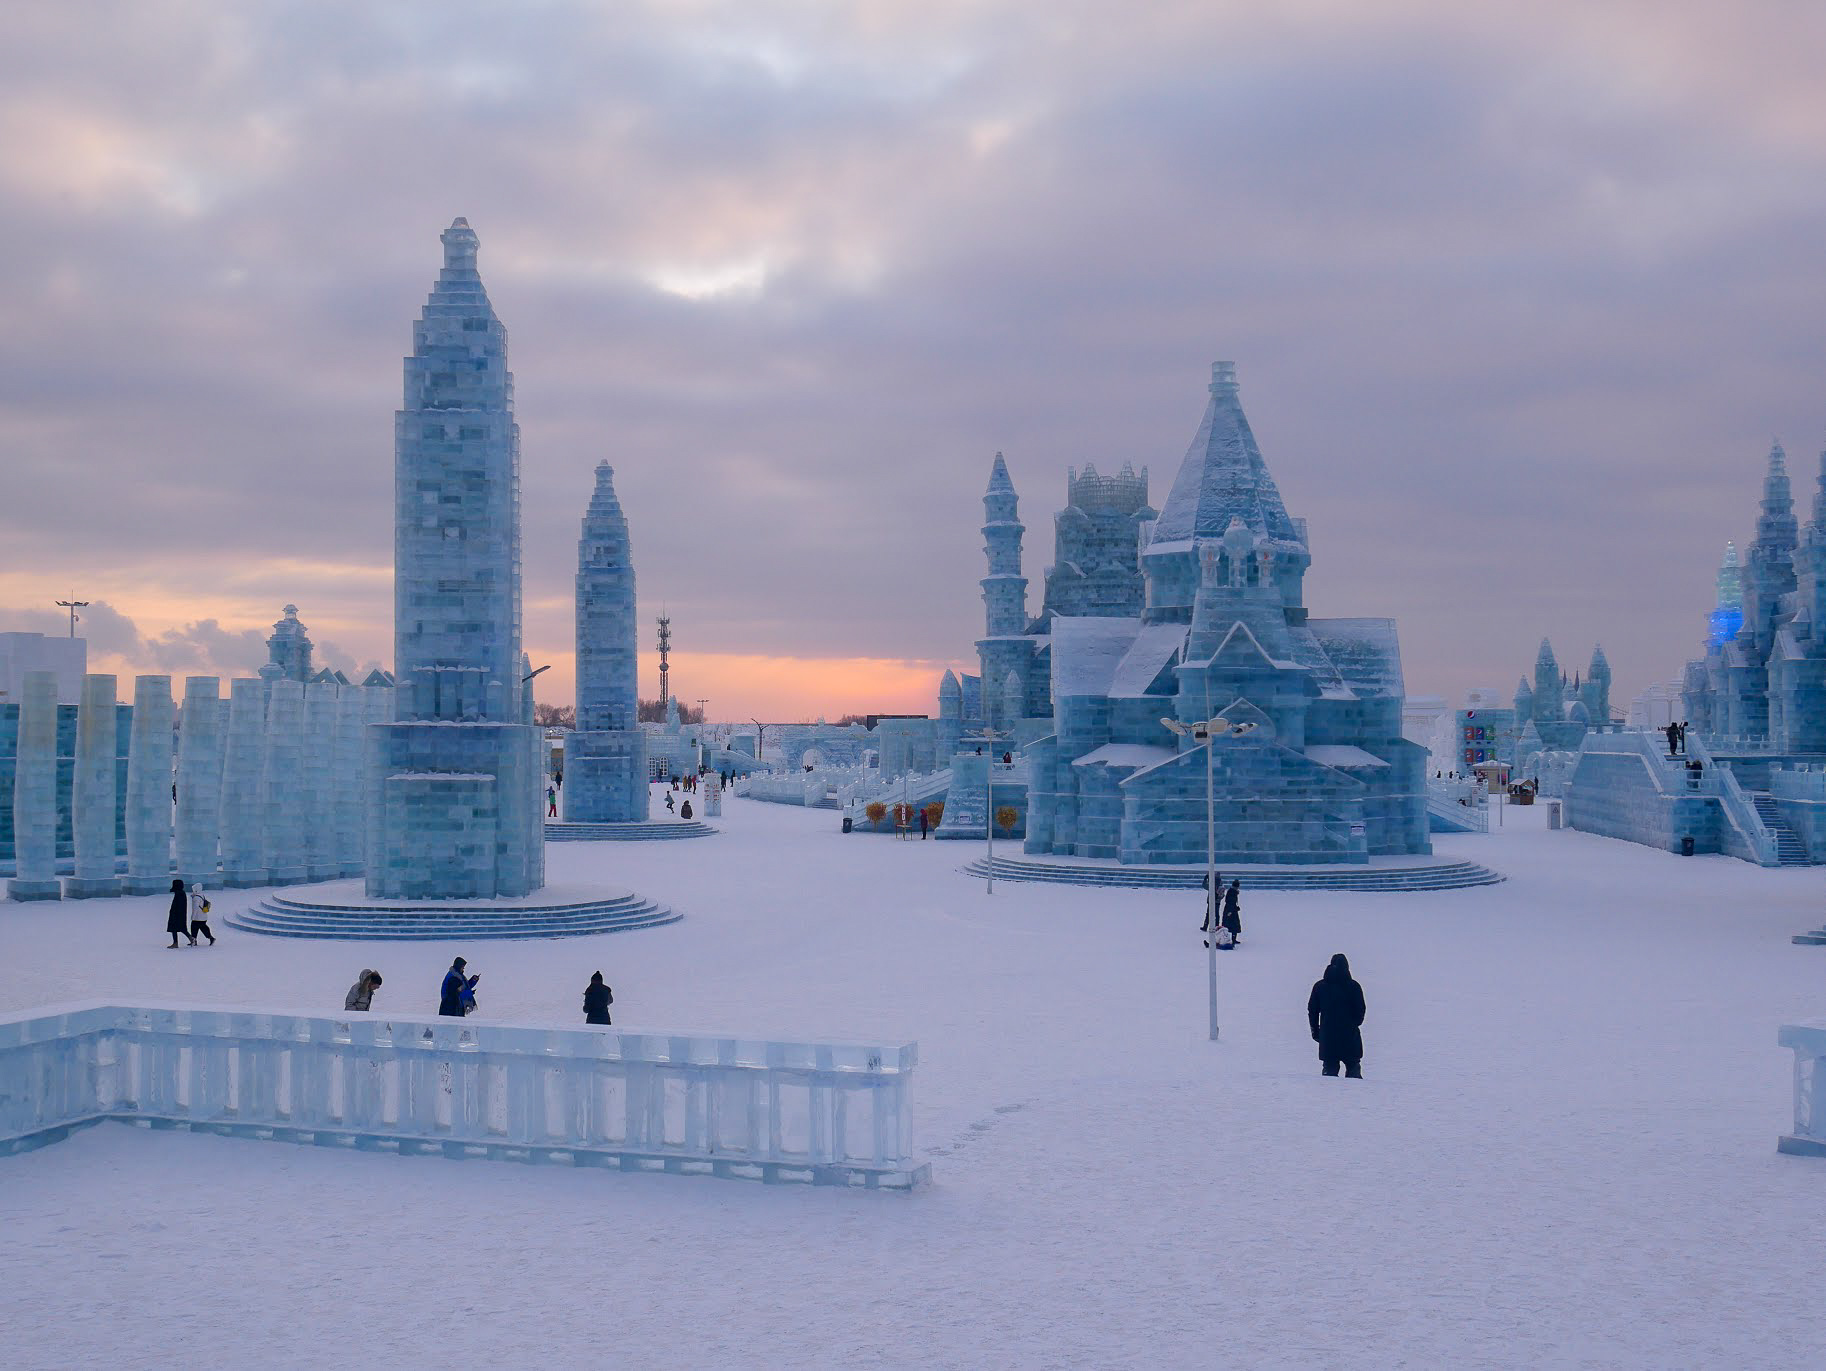 several ice buildings at Harbin Ice and Snow World